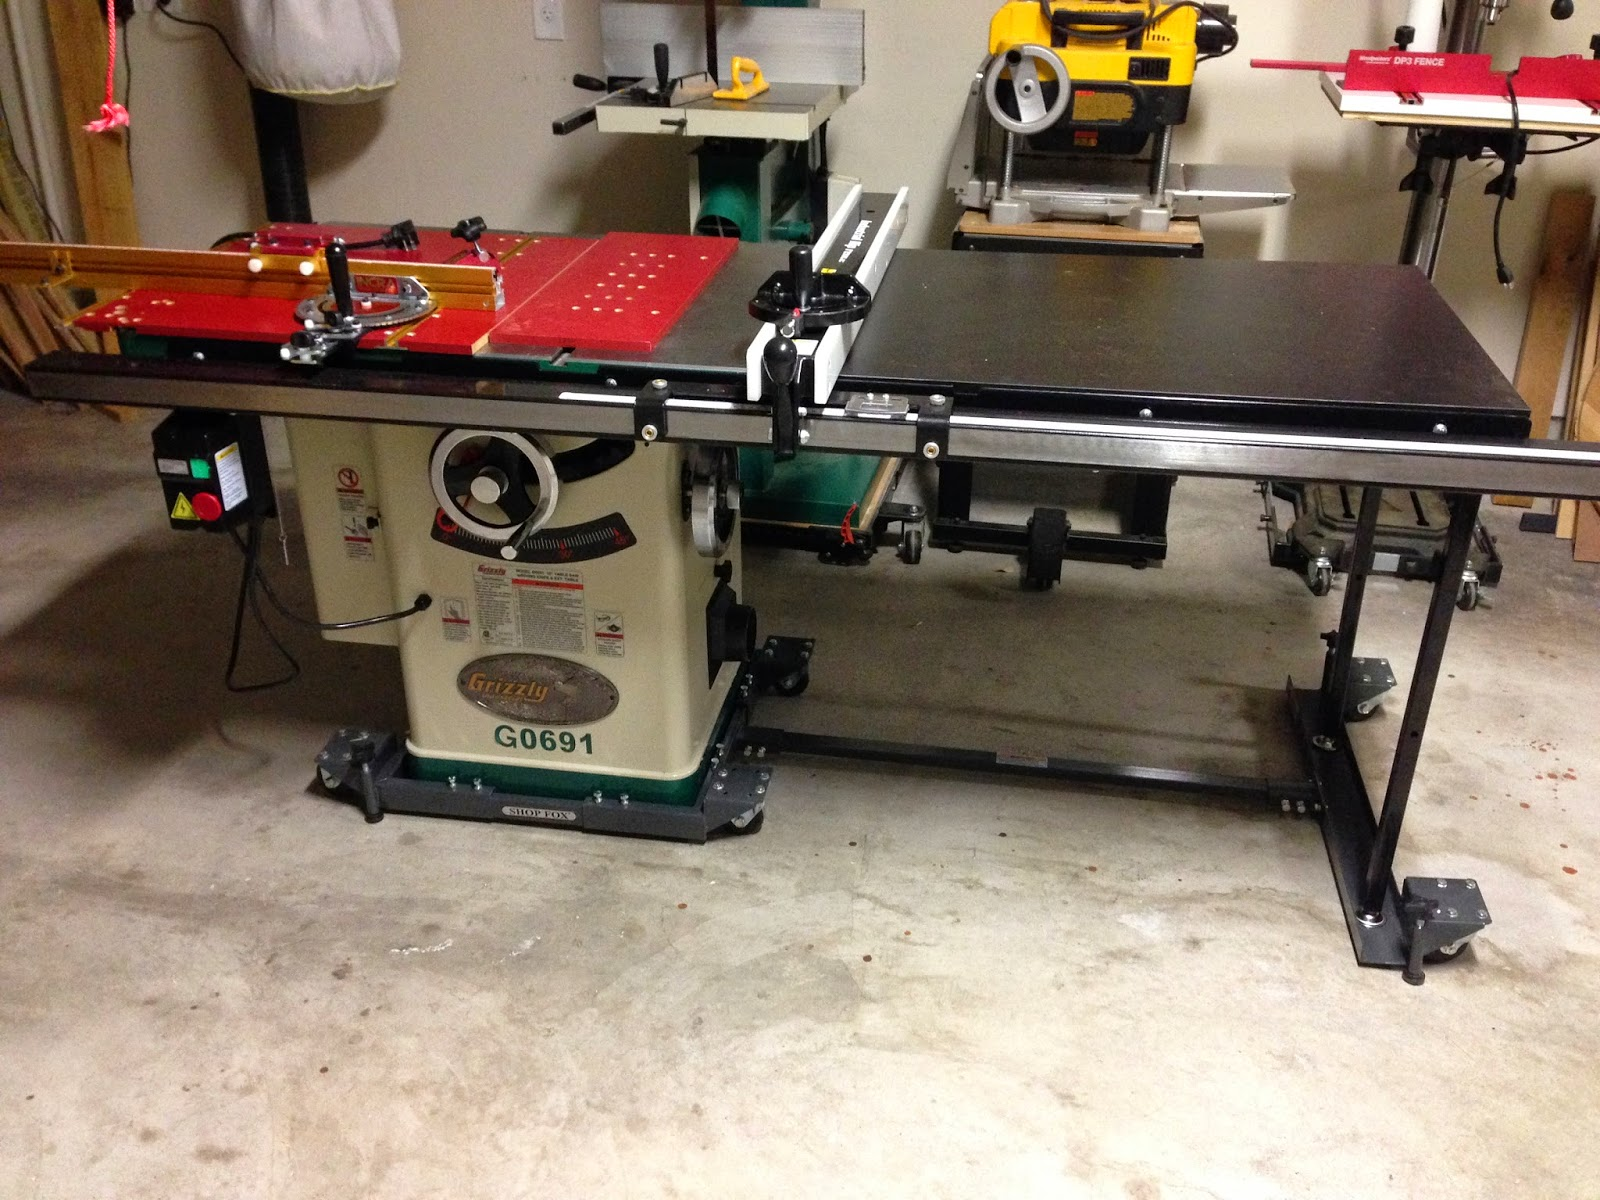 Incra Miter 500 Installed On A Grizzly G0691 Table Saw